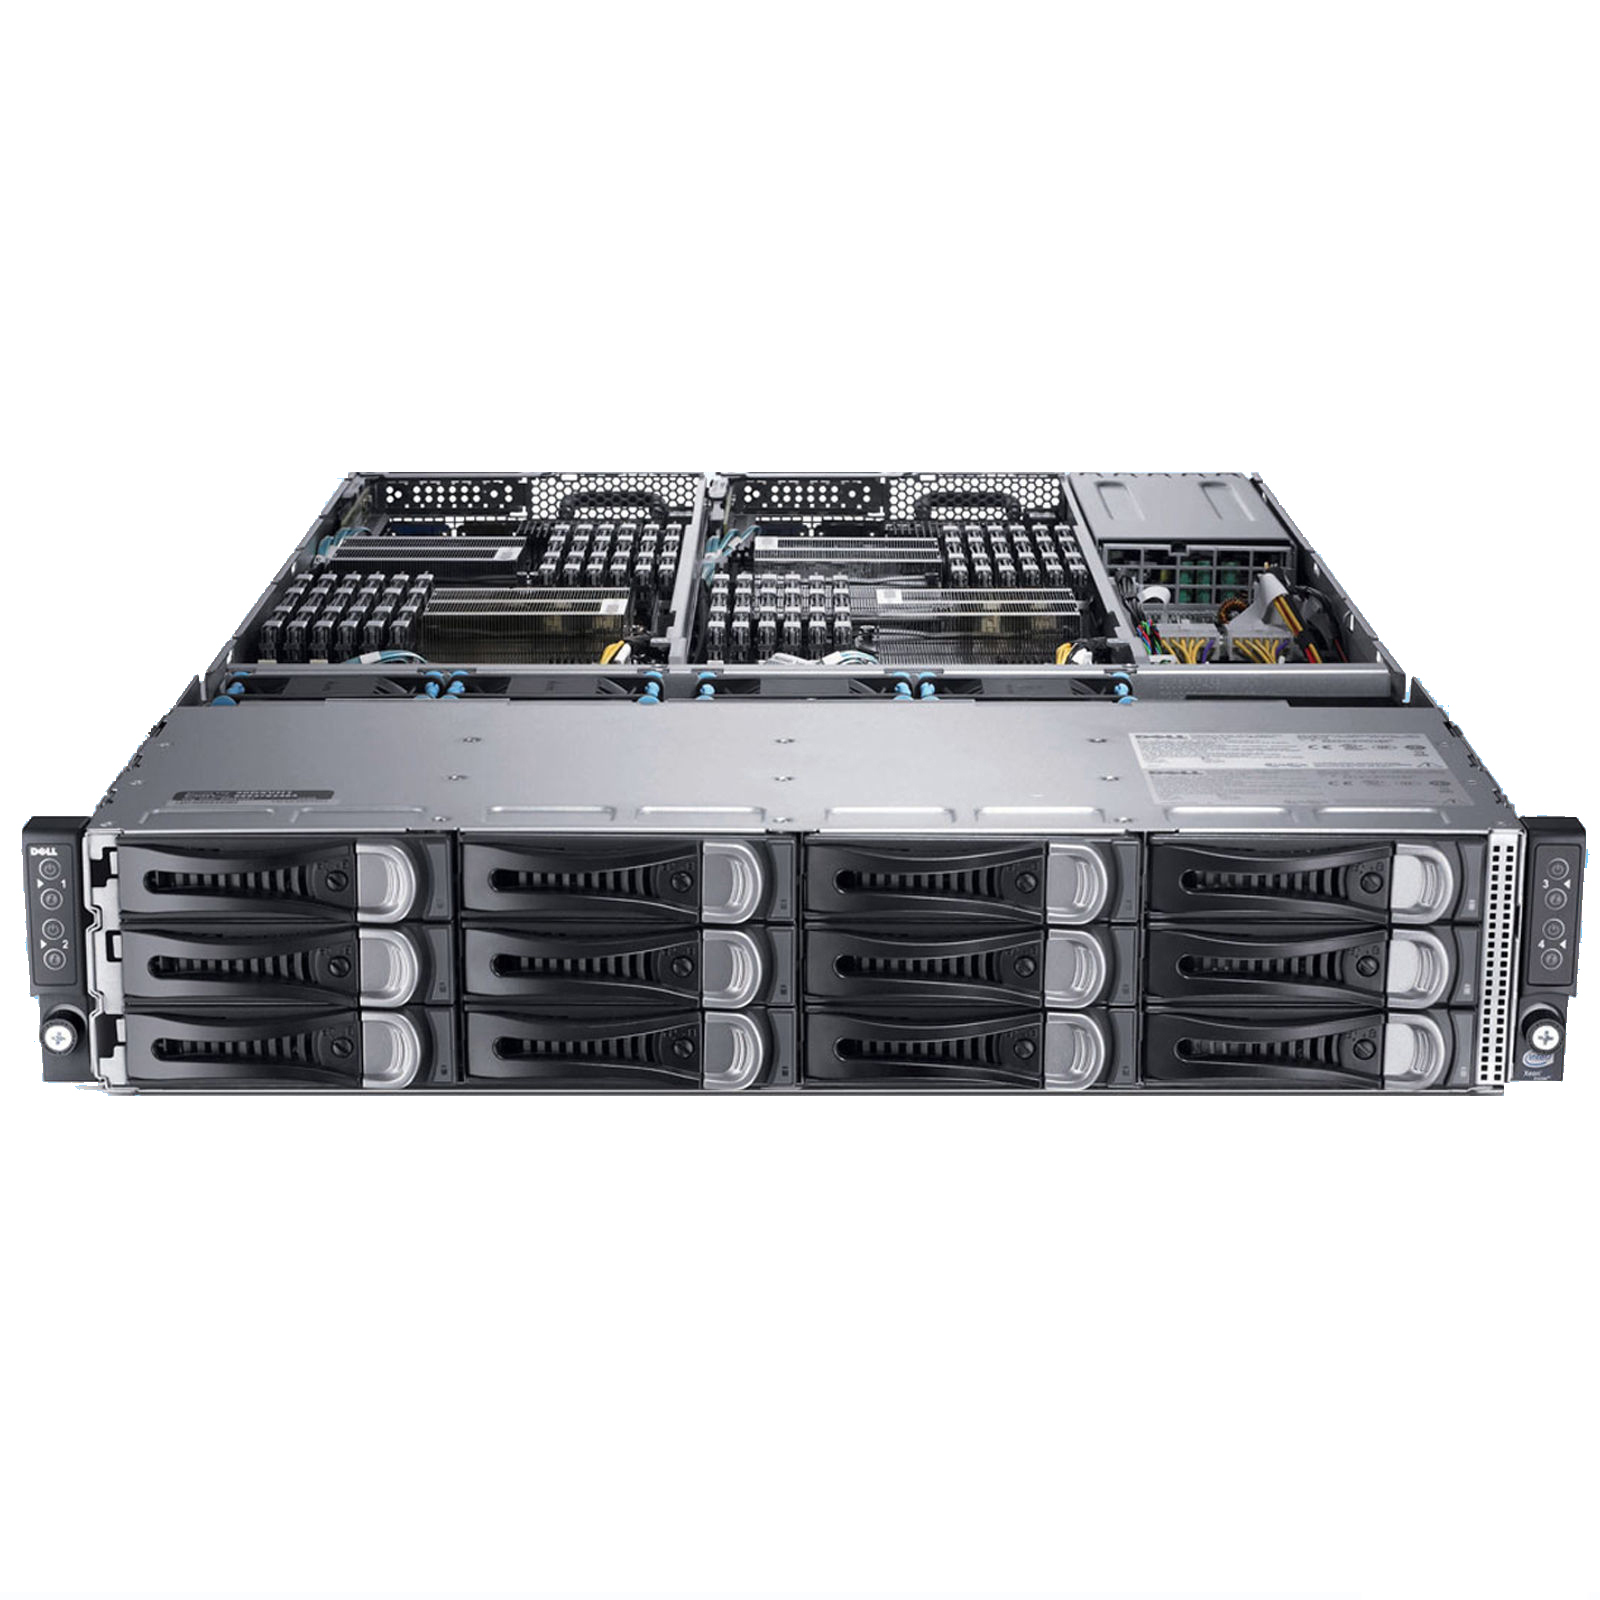 SERVER DELL POWEREDGE C6220 E5-2665 (2.0Ghz - 20M Cache - 8 Core/ 16 Threads)